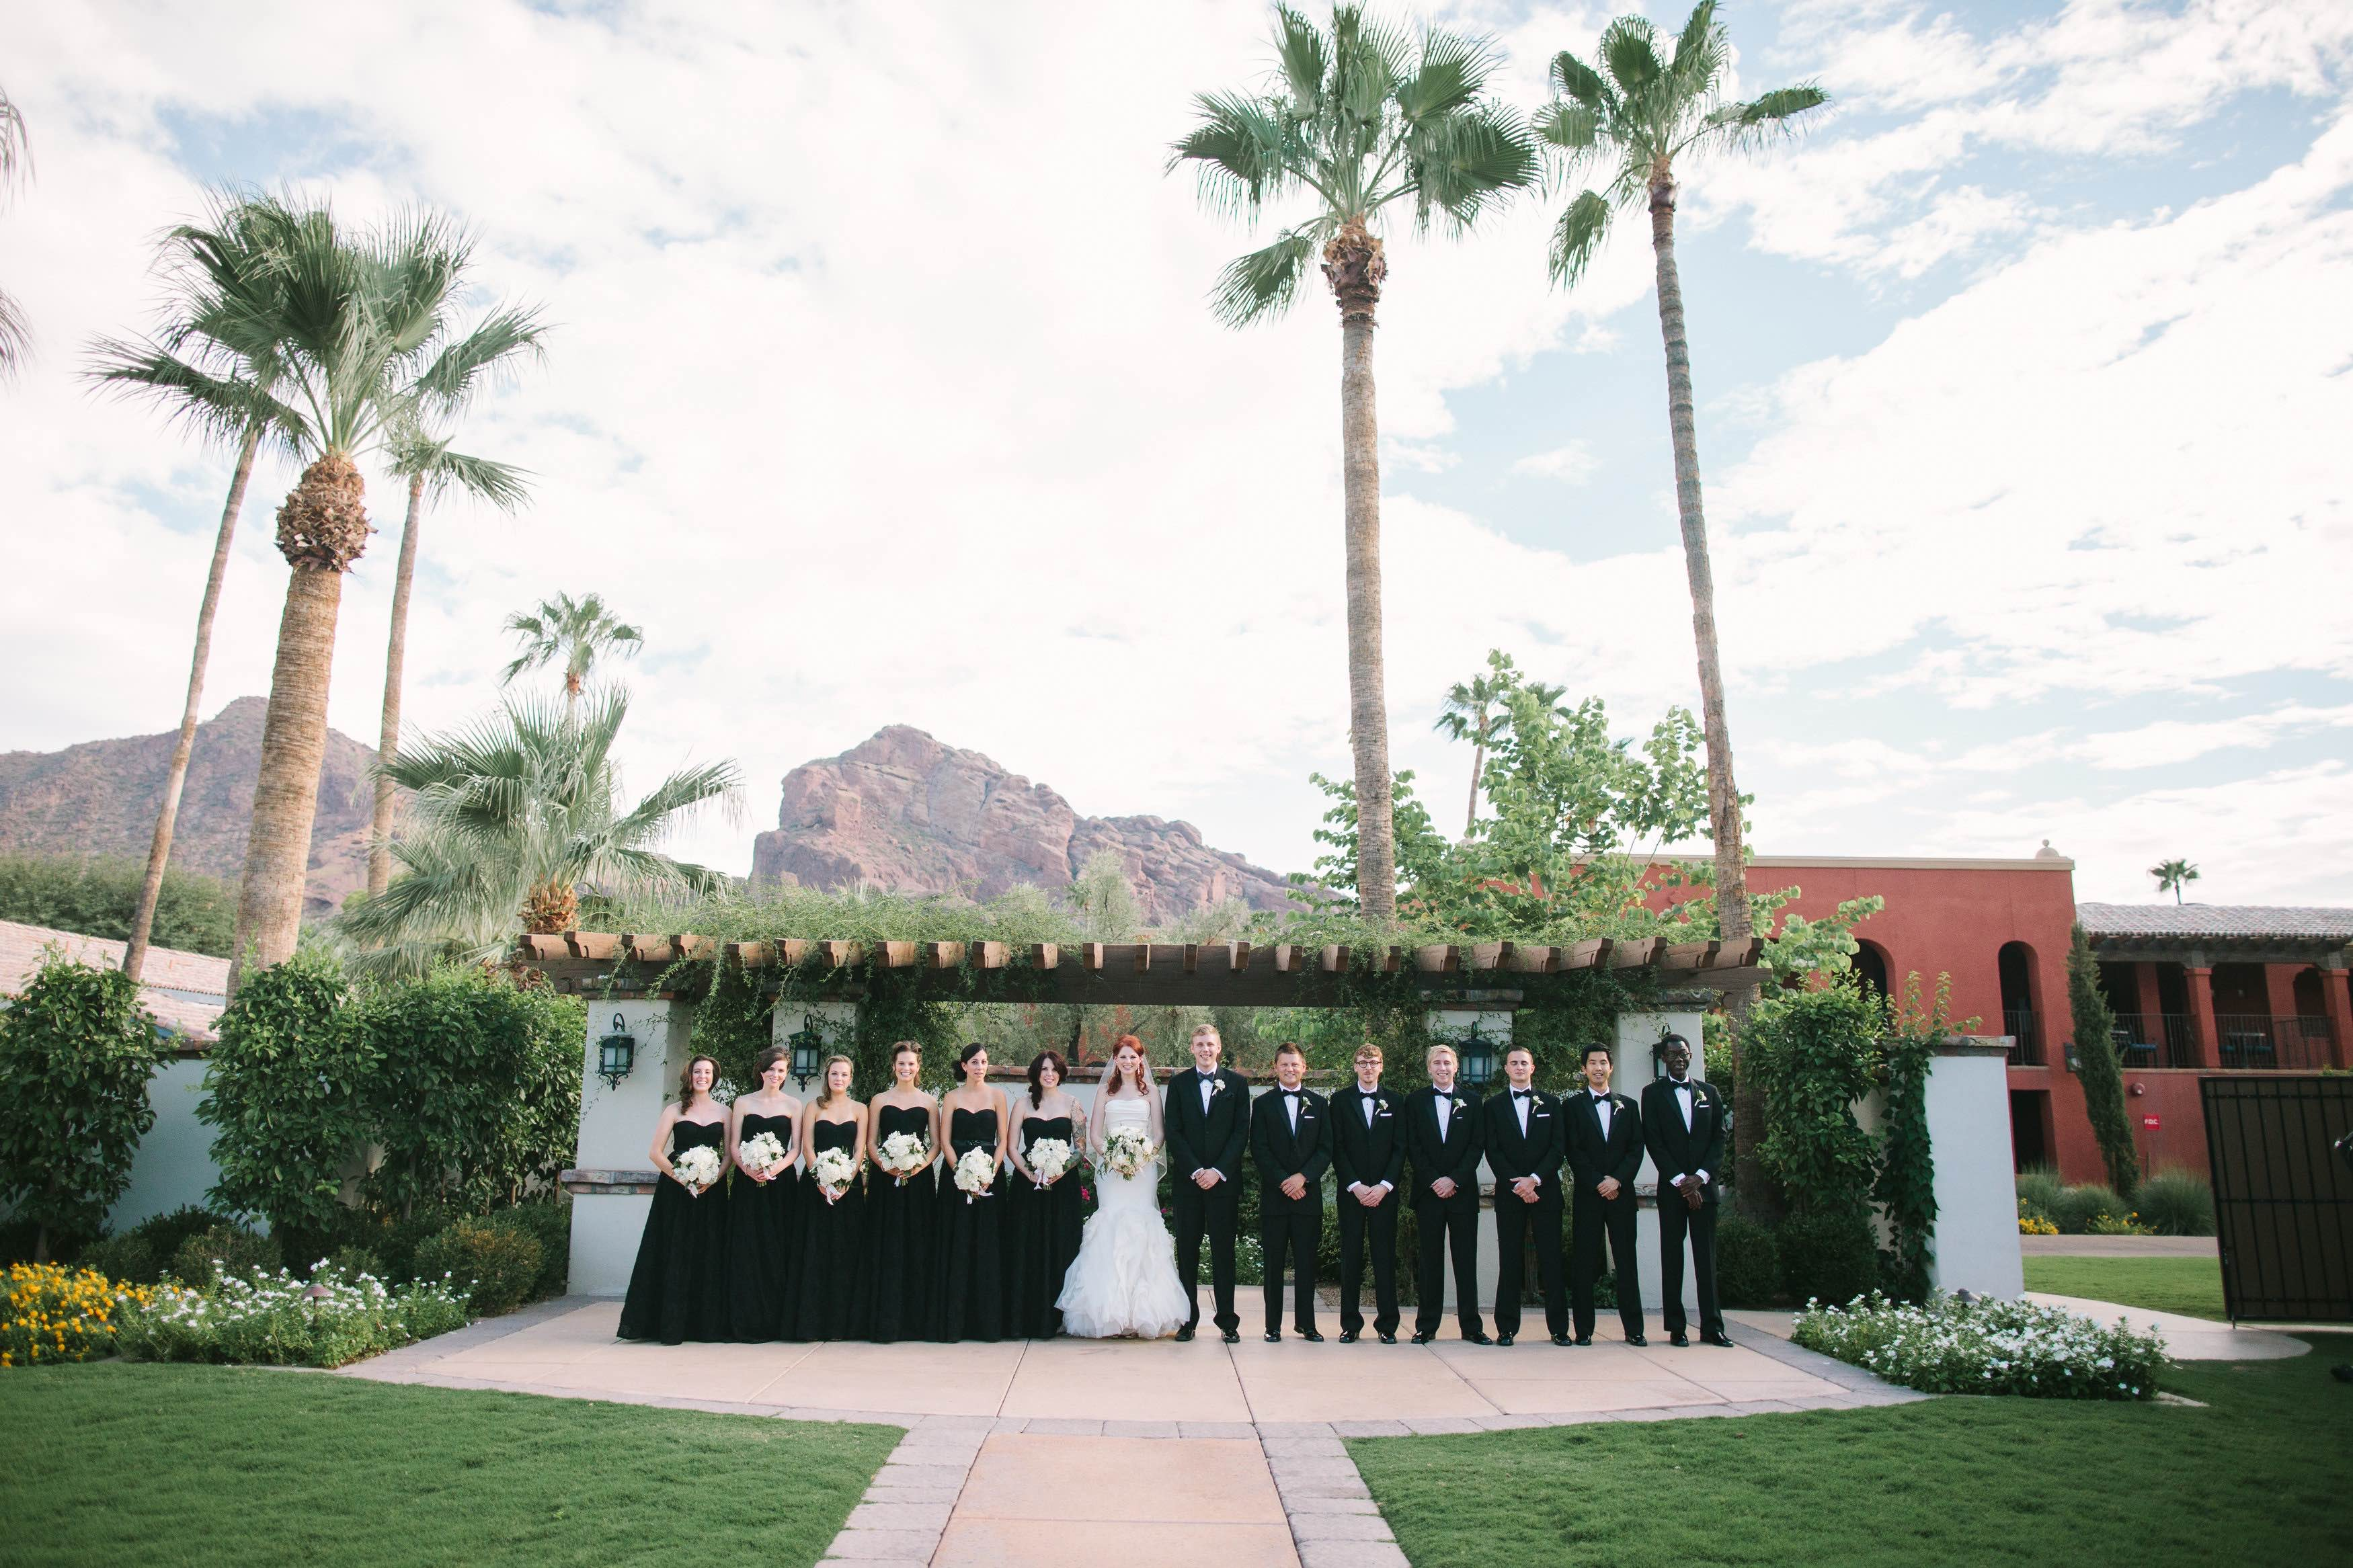 Arizona Wedding Looks Modernly Chic - MODwedding